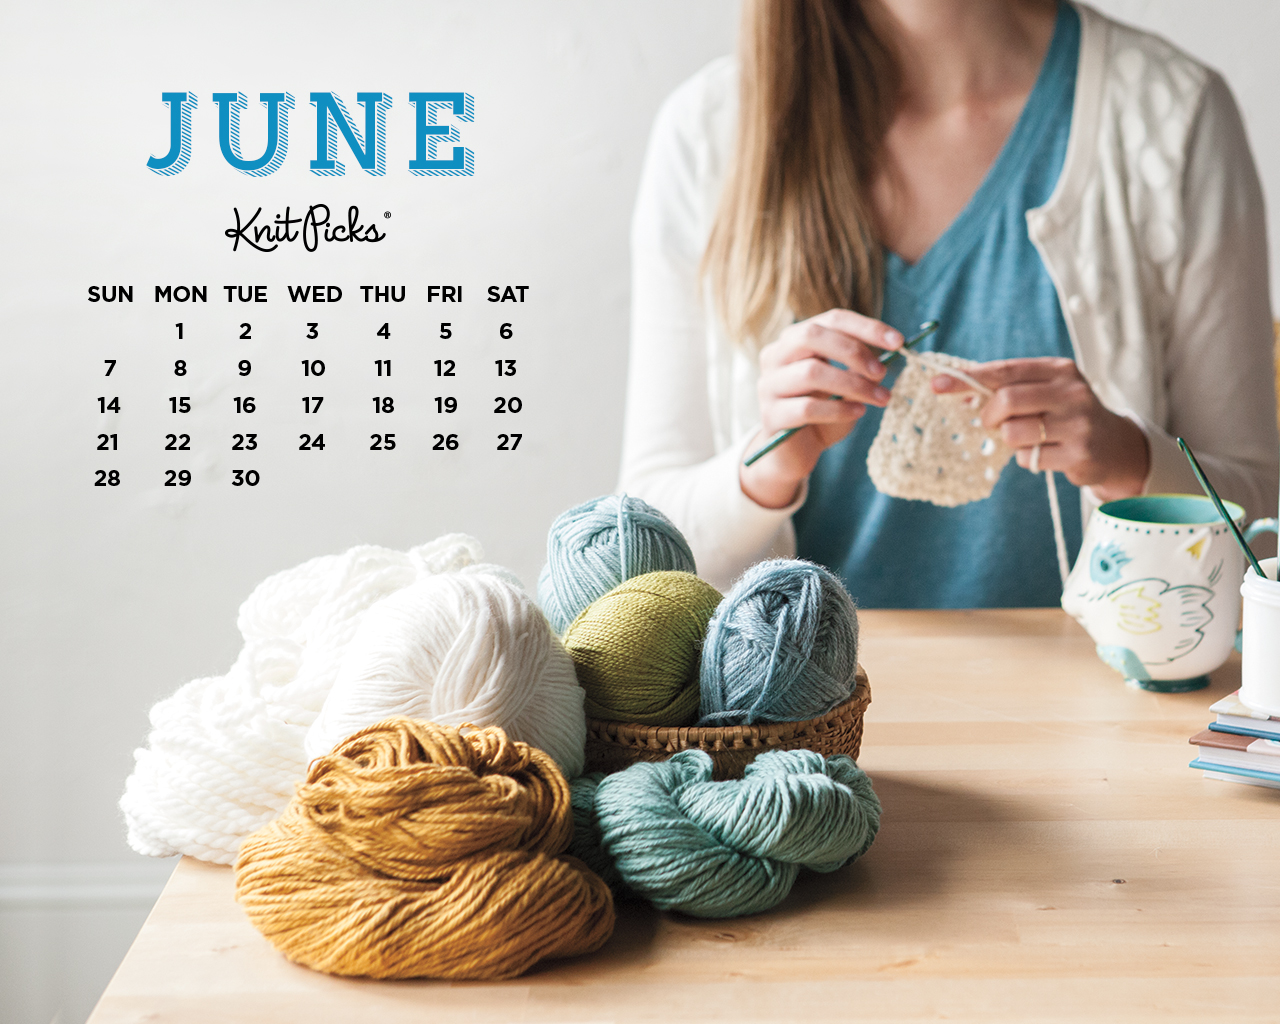 June 2015 Wallpaper Calendar   KnitPicks Staff Knitting Blog 1280x1024